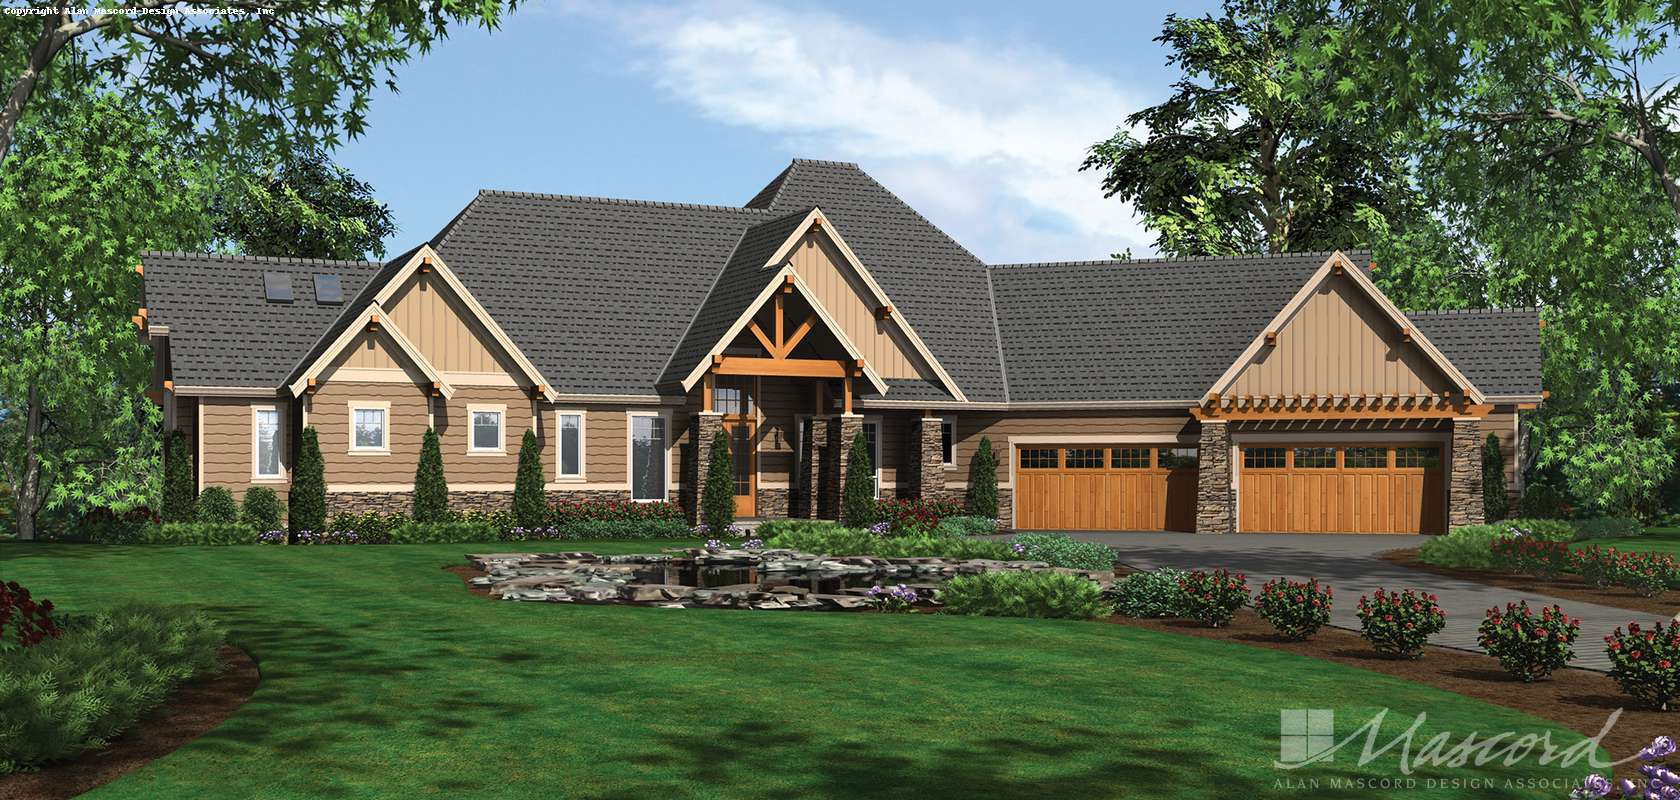 Mascord House Plan 1411D: The Timbersedge